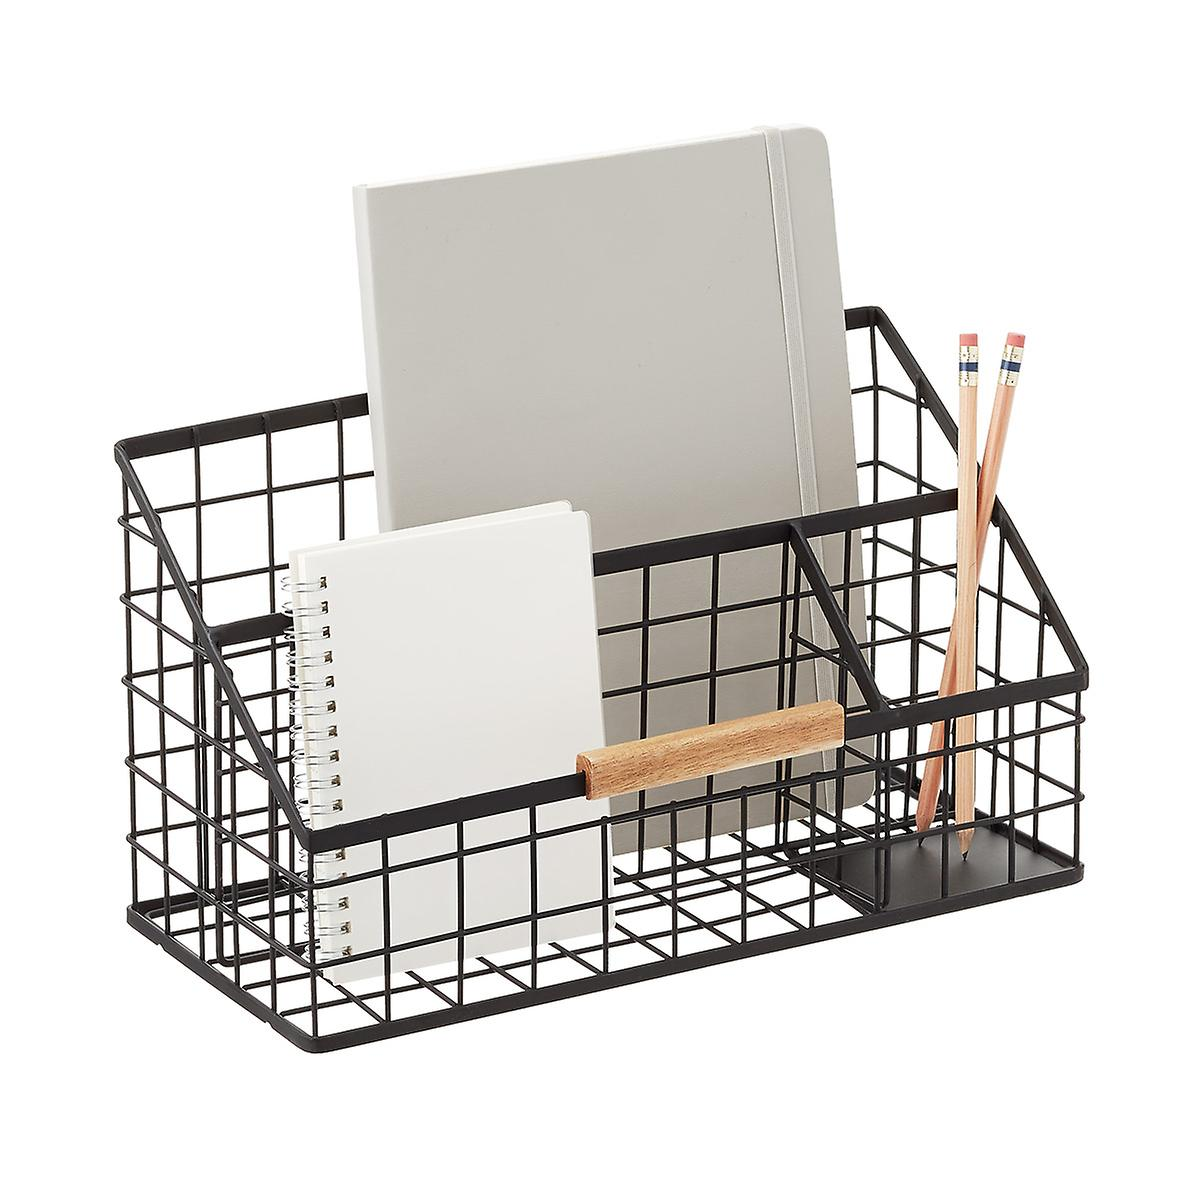 Design Ideas Sutton Desktop Organizer